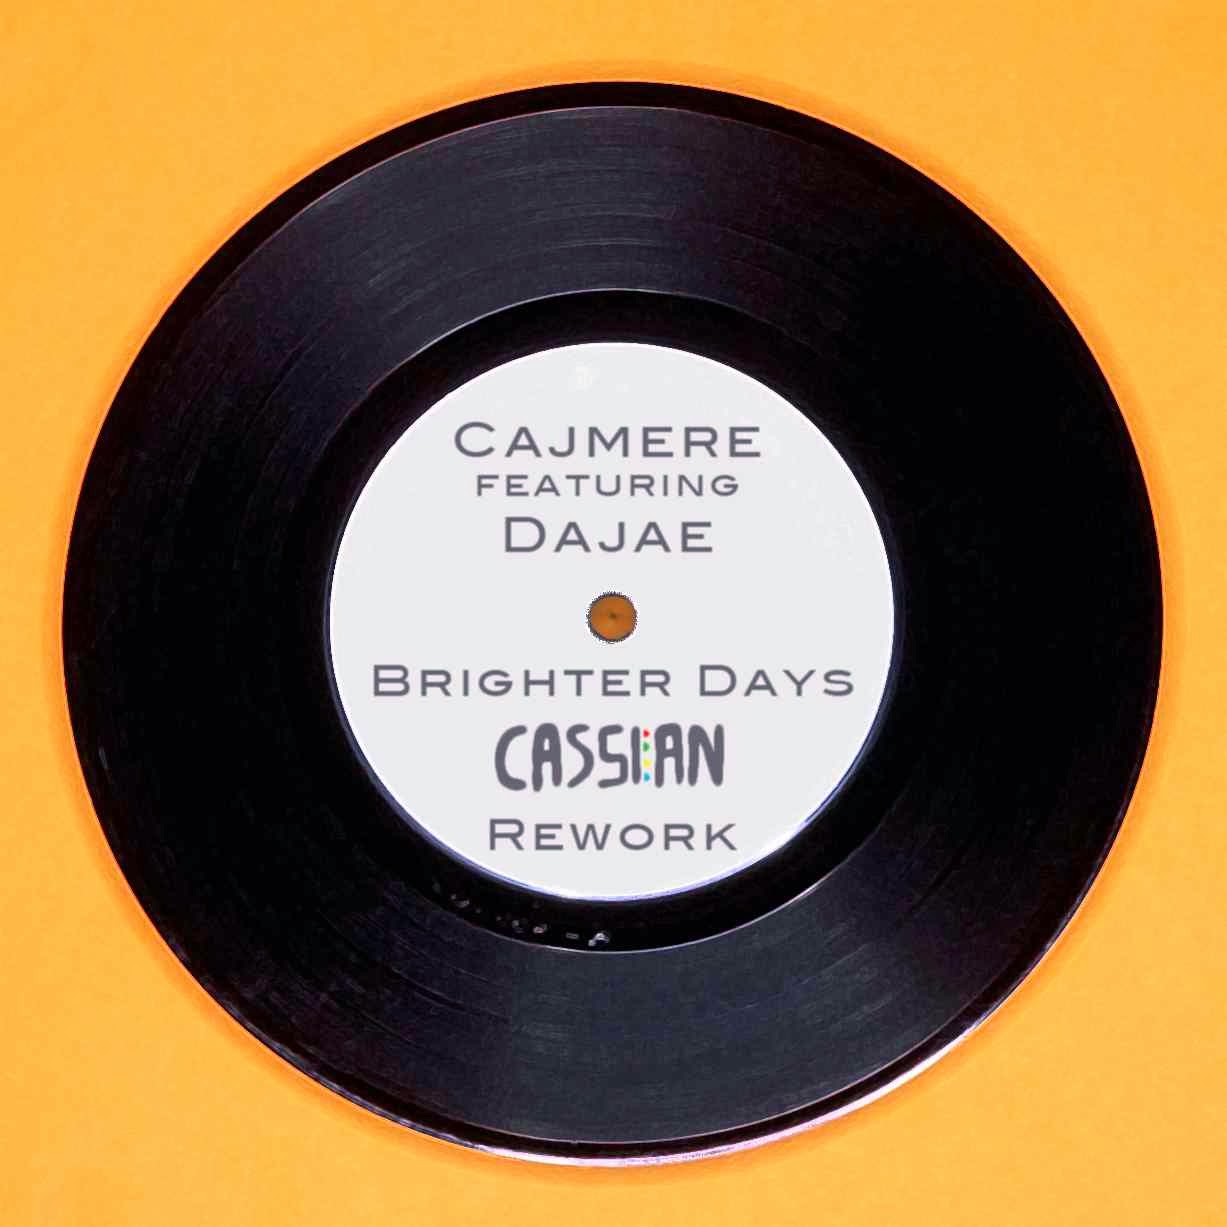 Cajmere - Brighter Days (Cassian Rework)